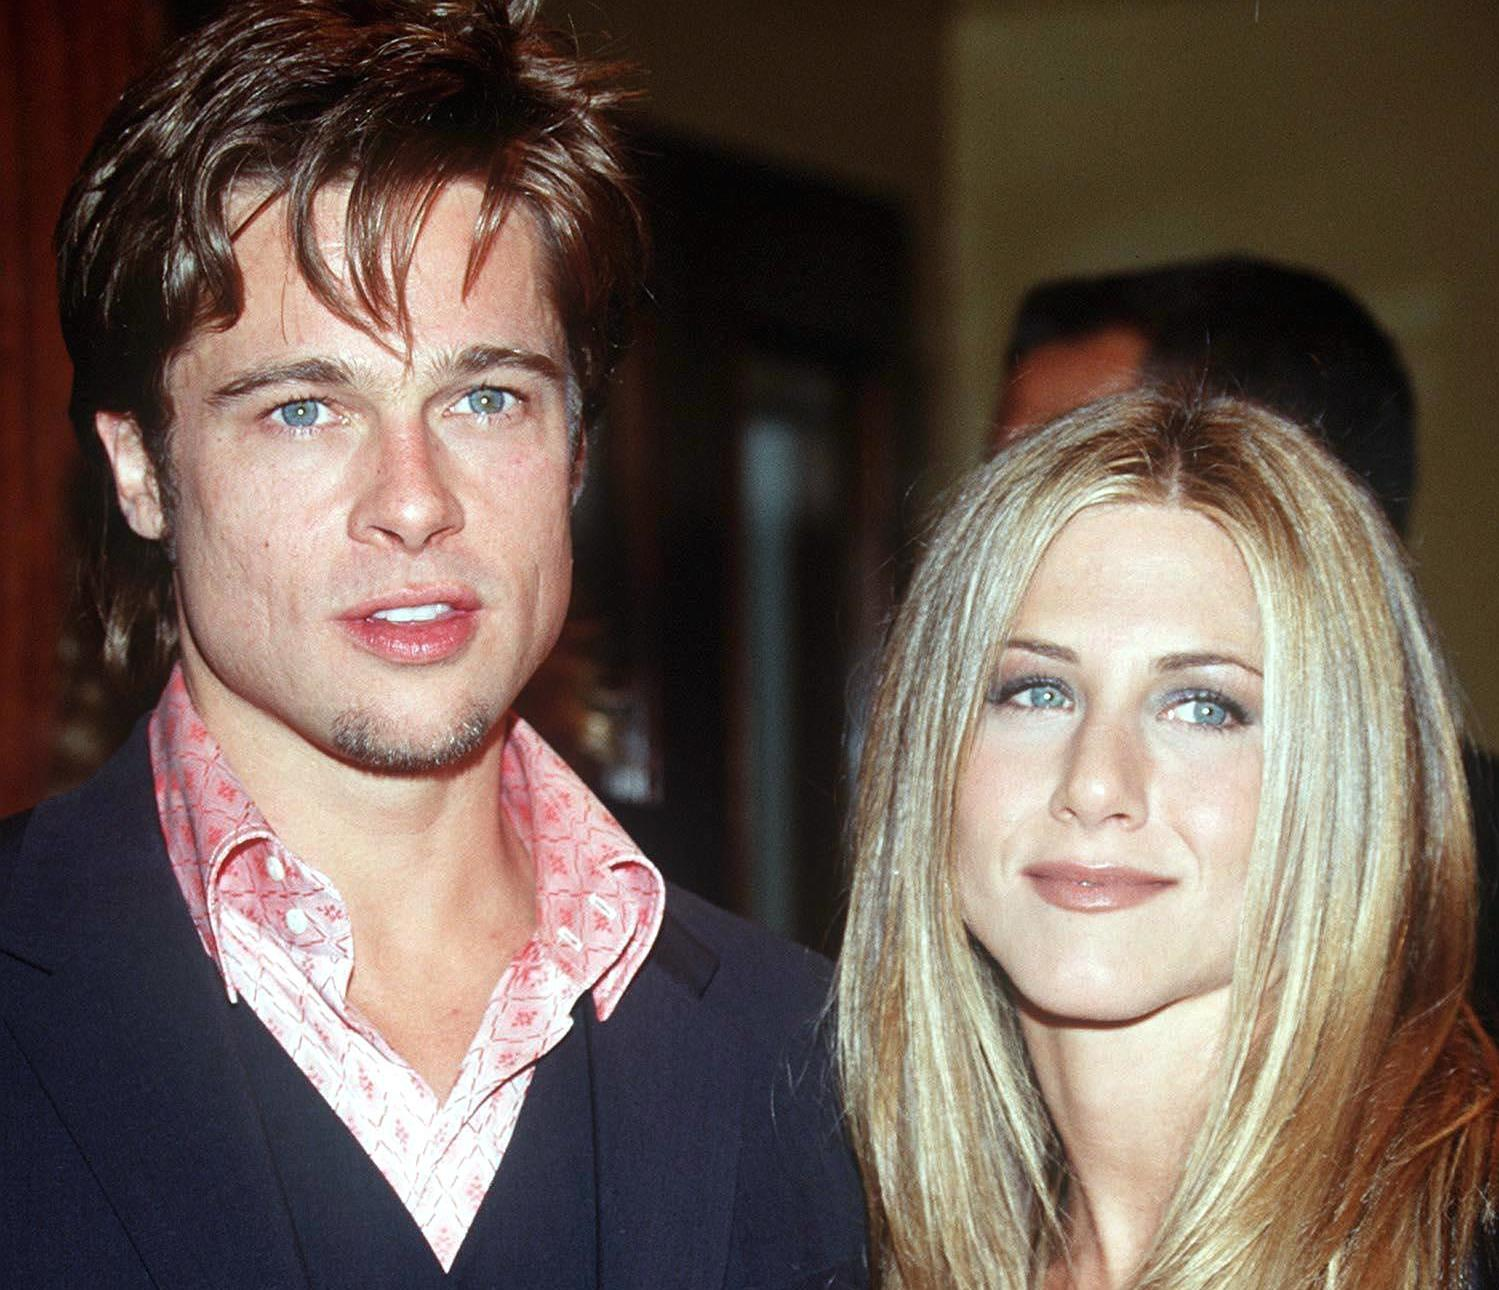 BRAD PITT WITH JENNIFER ANISTON AT 'THE FIGHT CLUB' PREMIERE IN  LOS ANGELES